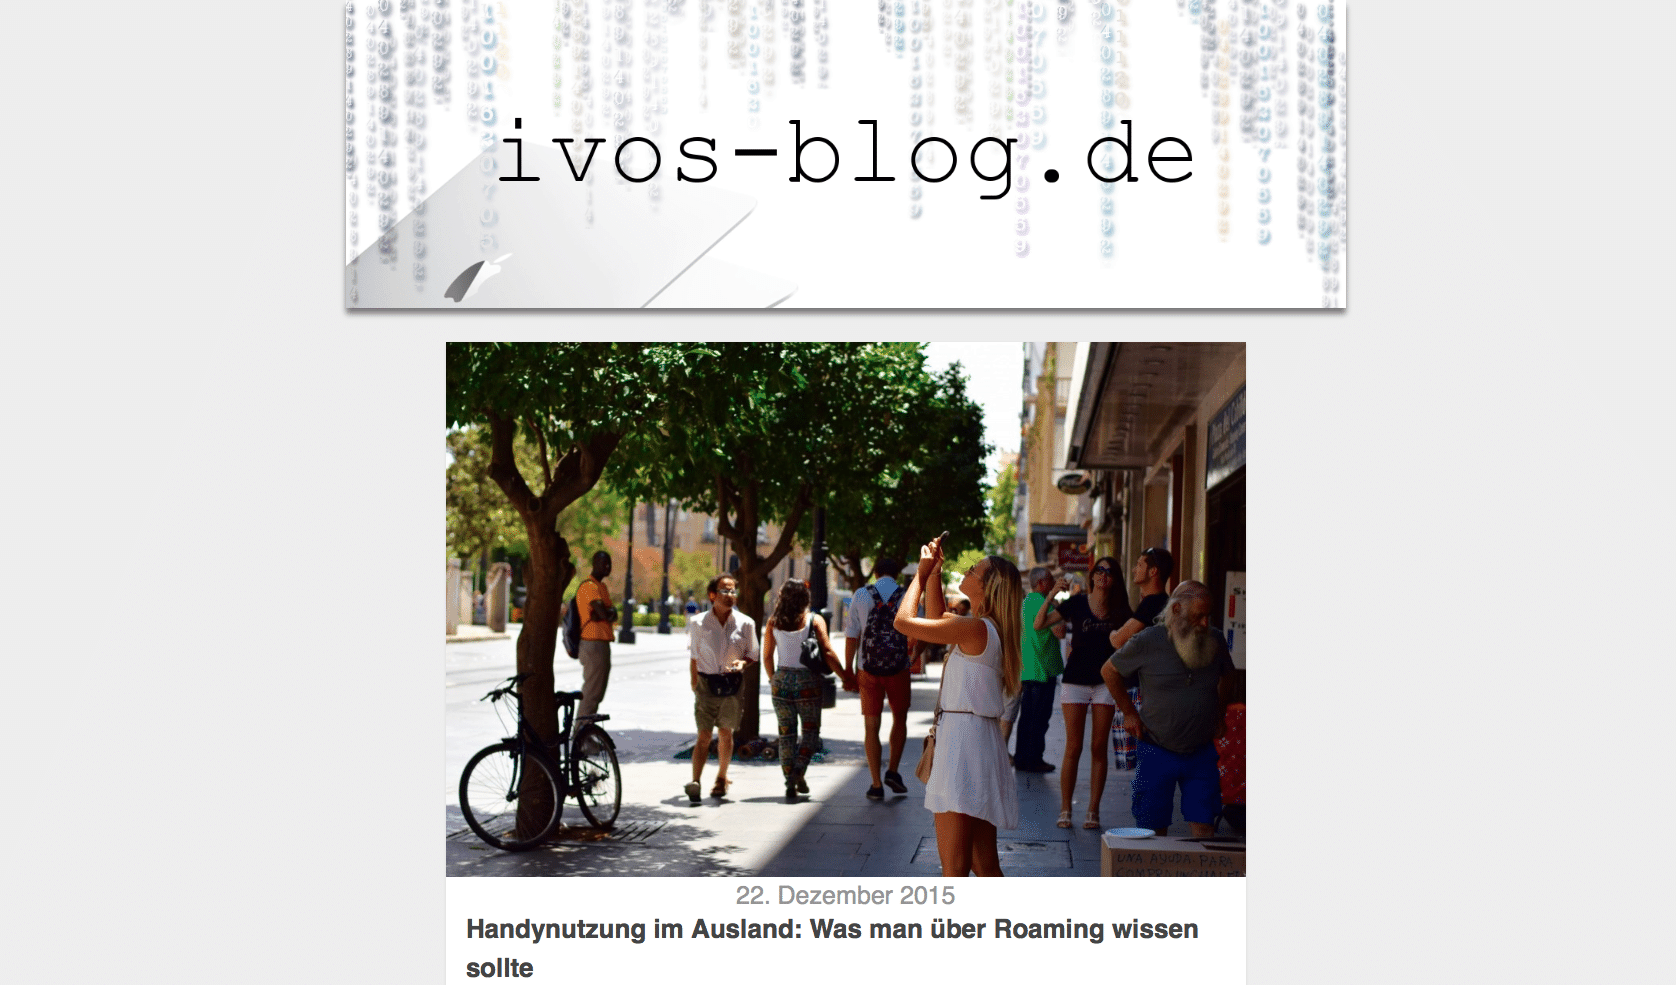 ivos-blog.de neues Design 2016